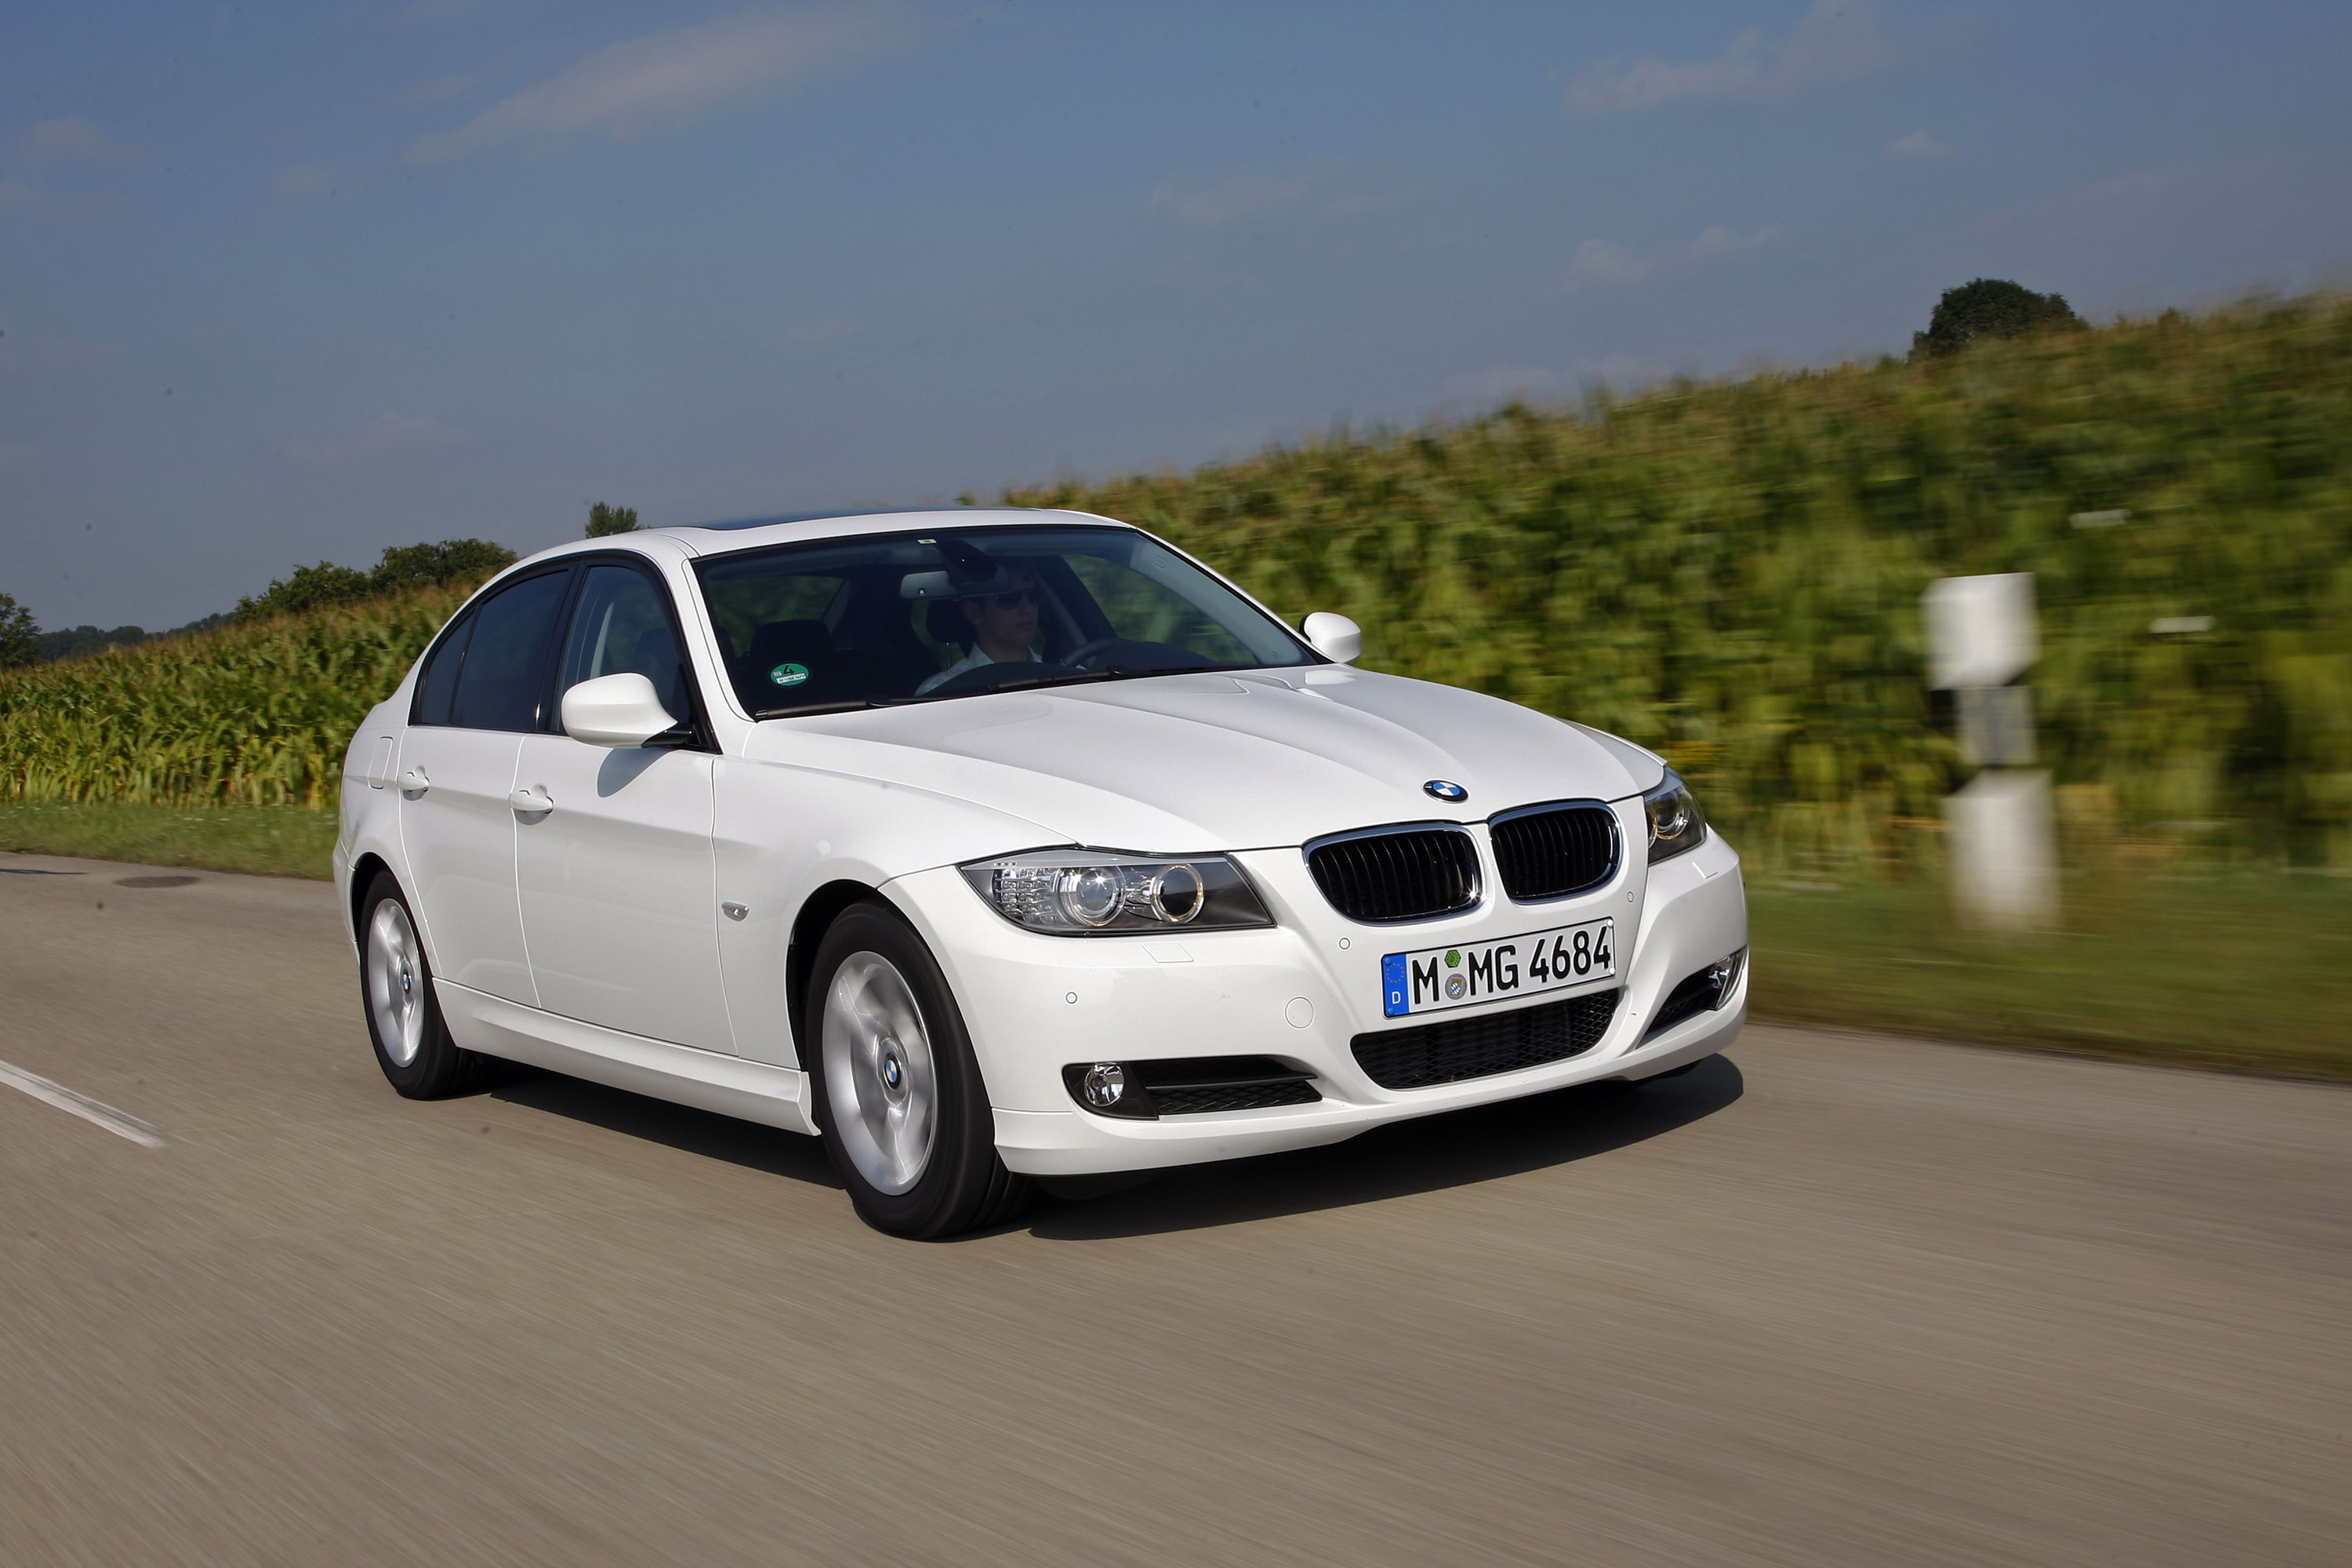 Images of bmw 320d efficientdynamics edition e90 2009 11 - Images Of Bmw 320d Efficientdynamics Edition E90 2009 11 16